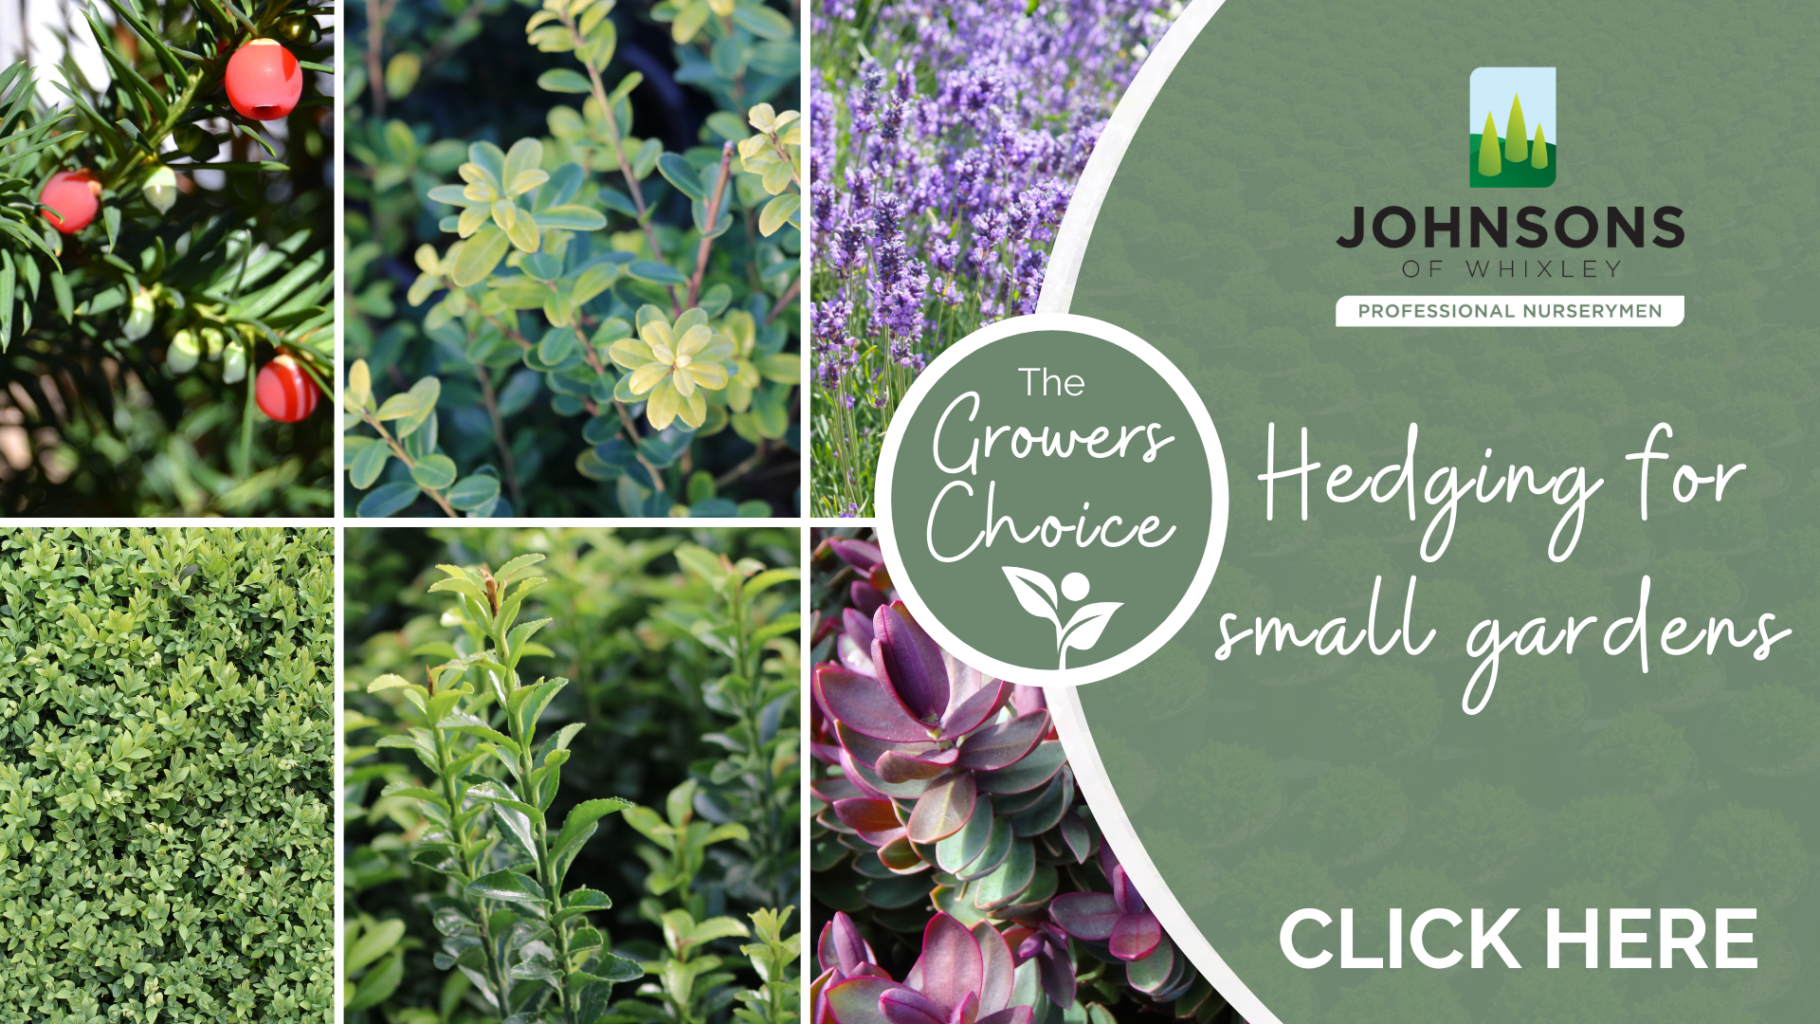 The Growers Choice: Hedging for small gardens